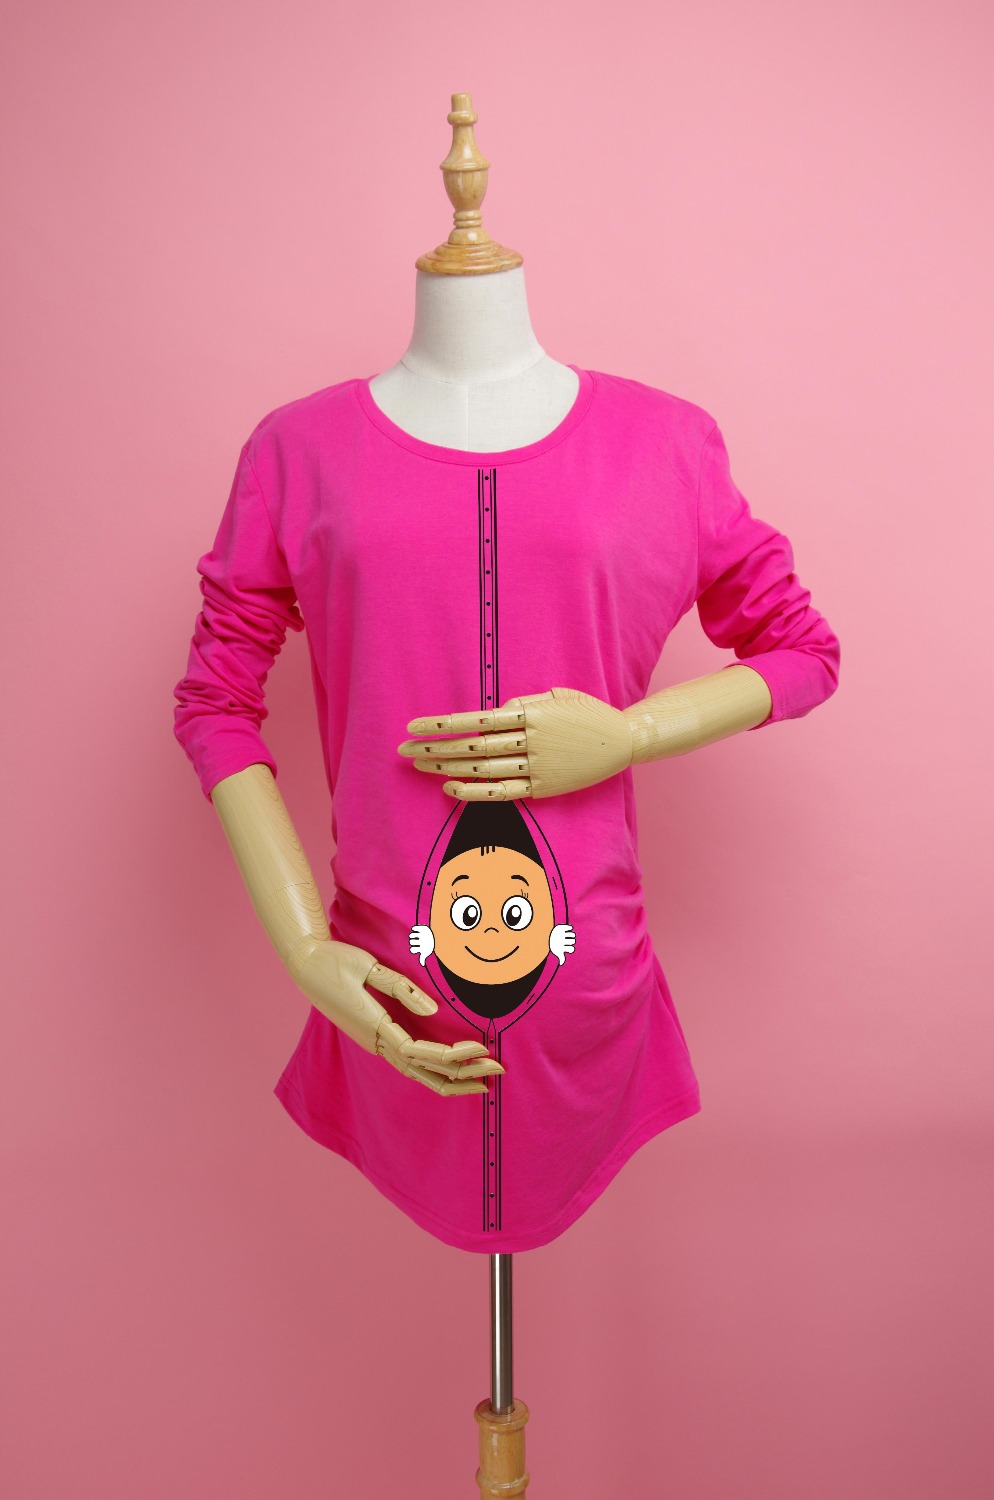 eb47ceae90f 2018 Funny and Cute Long sleeves Maternity Shirt